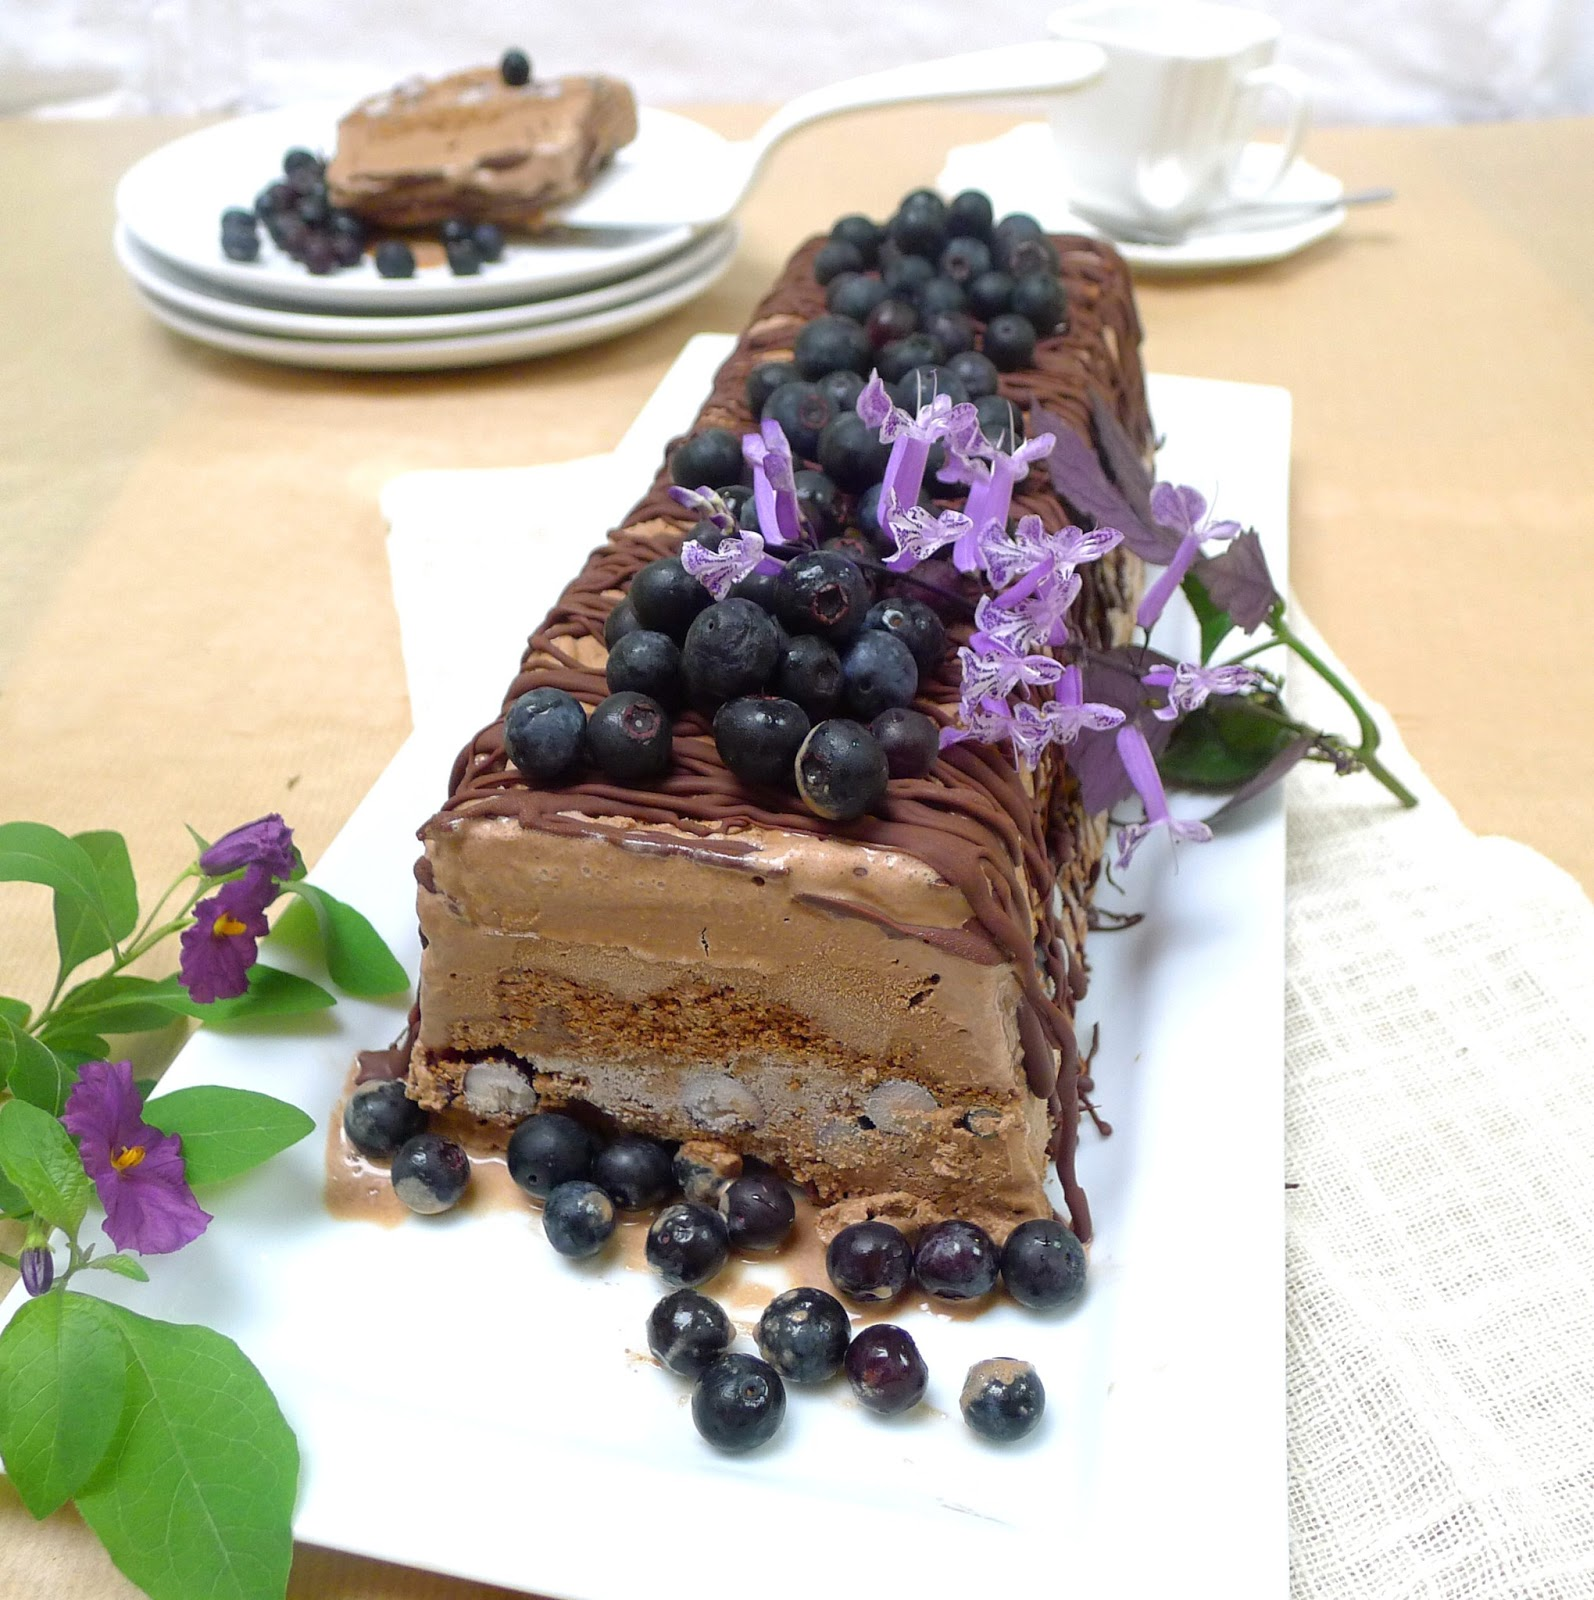 UndomestiKATEd: Chocolate and Blueberry ice cream cake